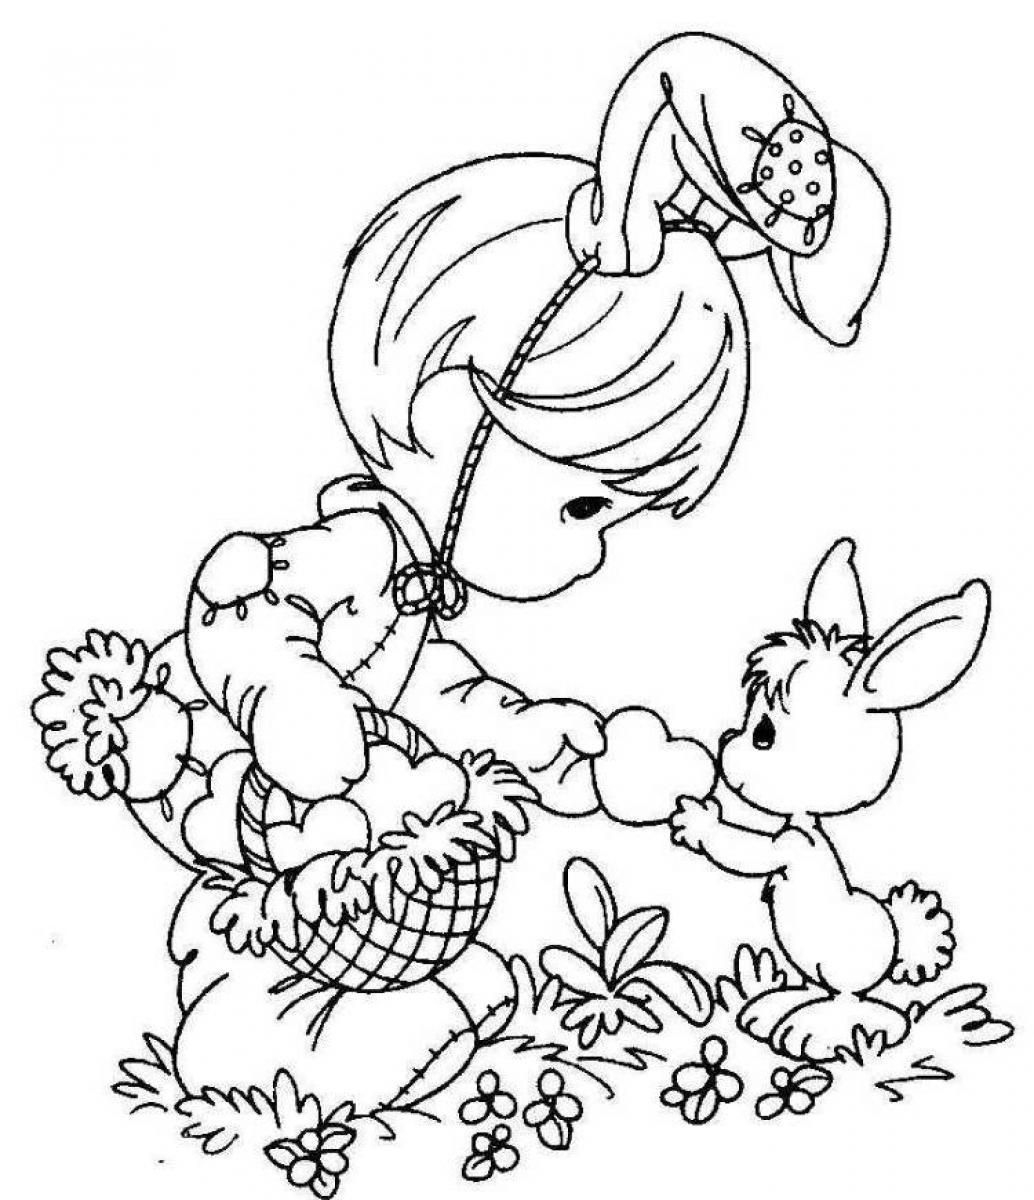 Printable Easter Coloring Pages Free Scott Fay On Free Happy Easter - Free Printable Easter Coloring Pictures